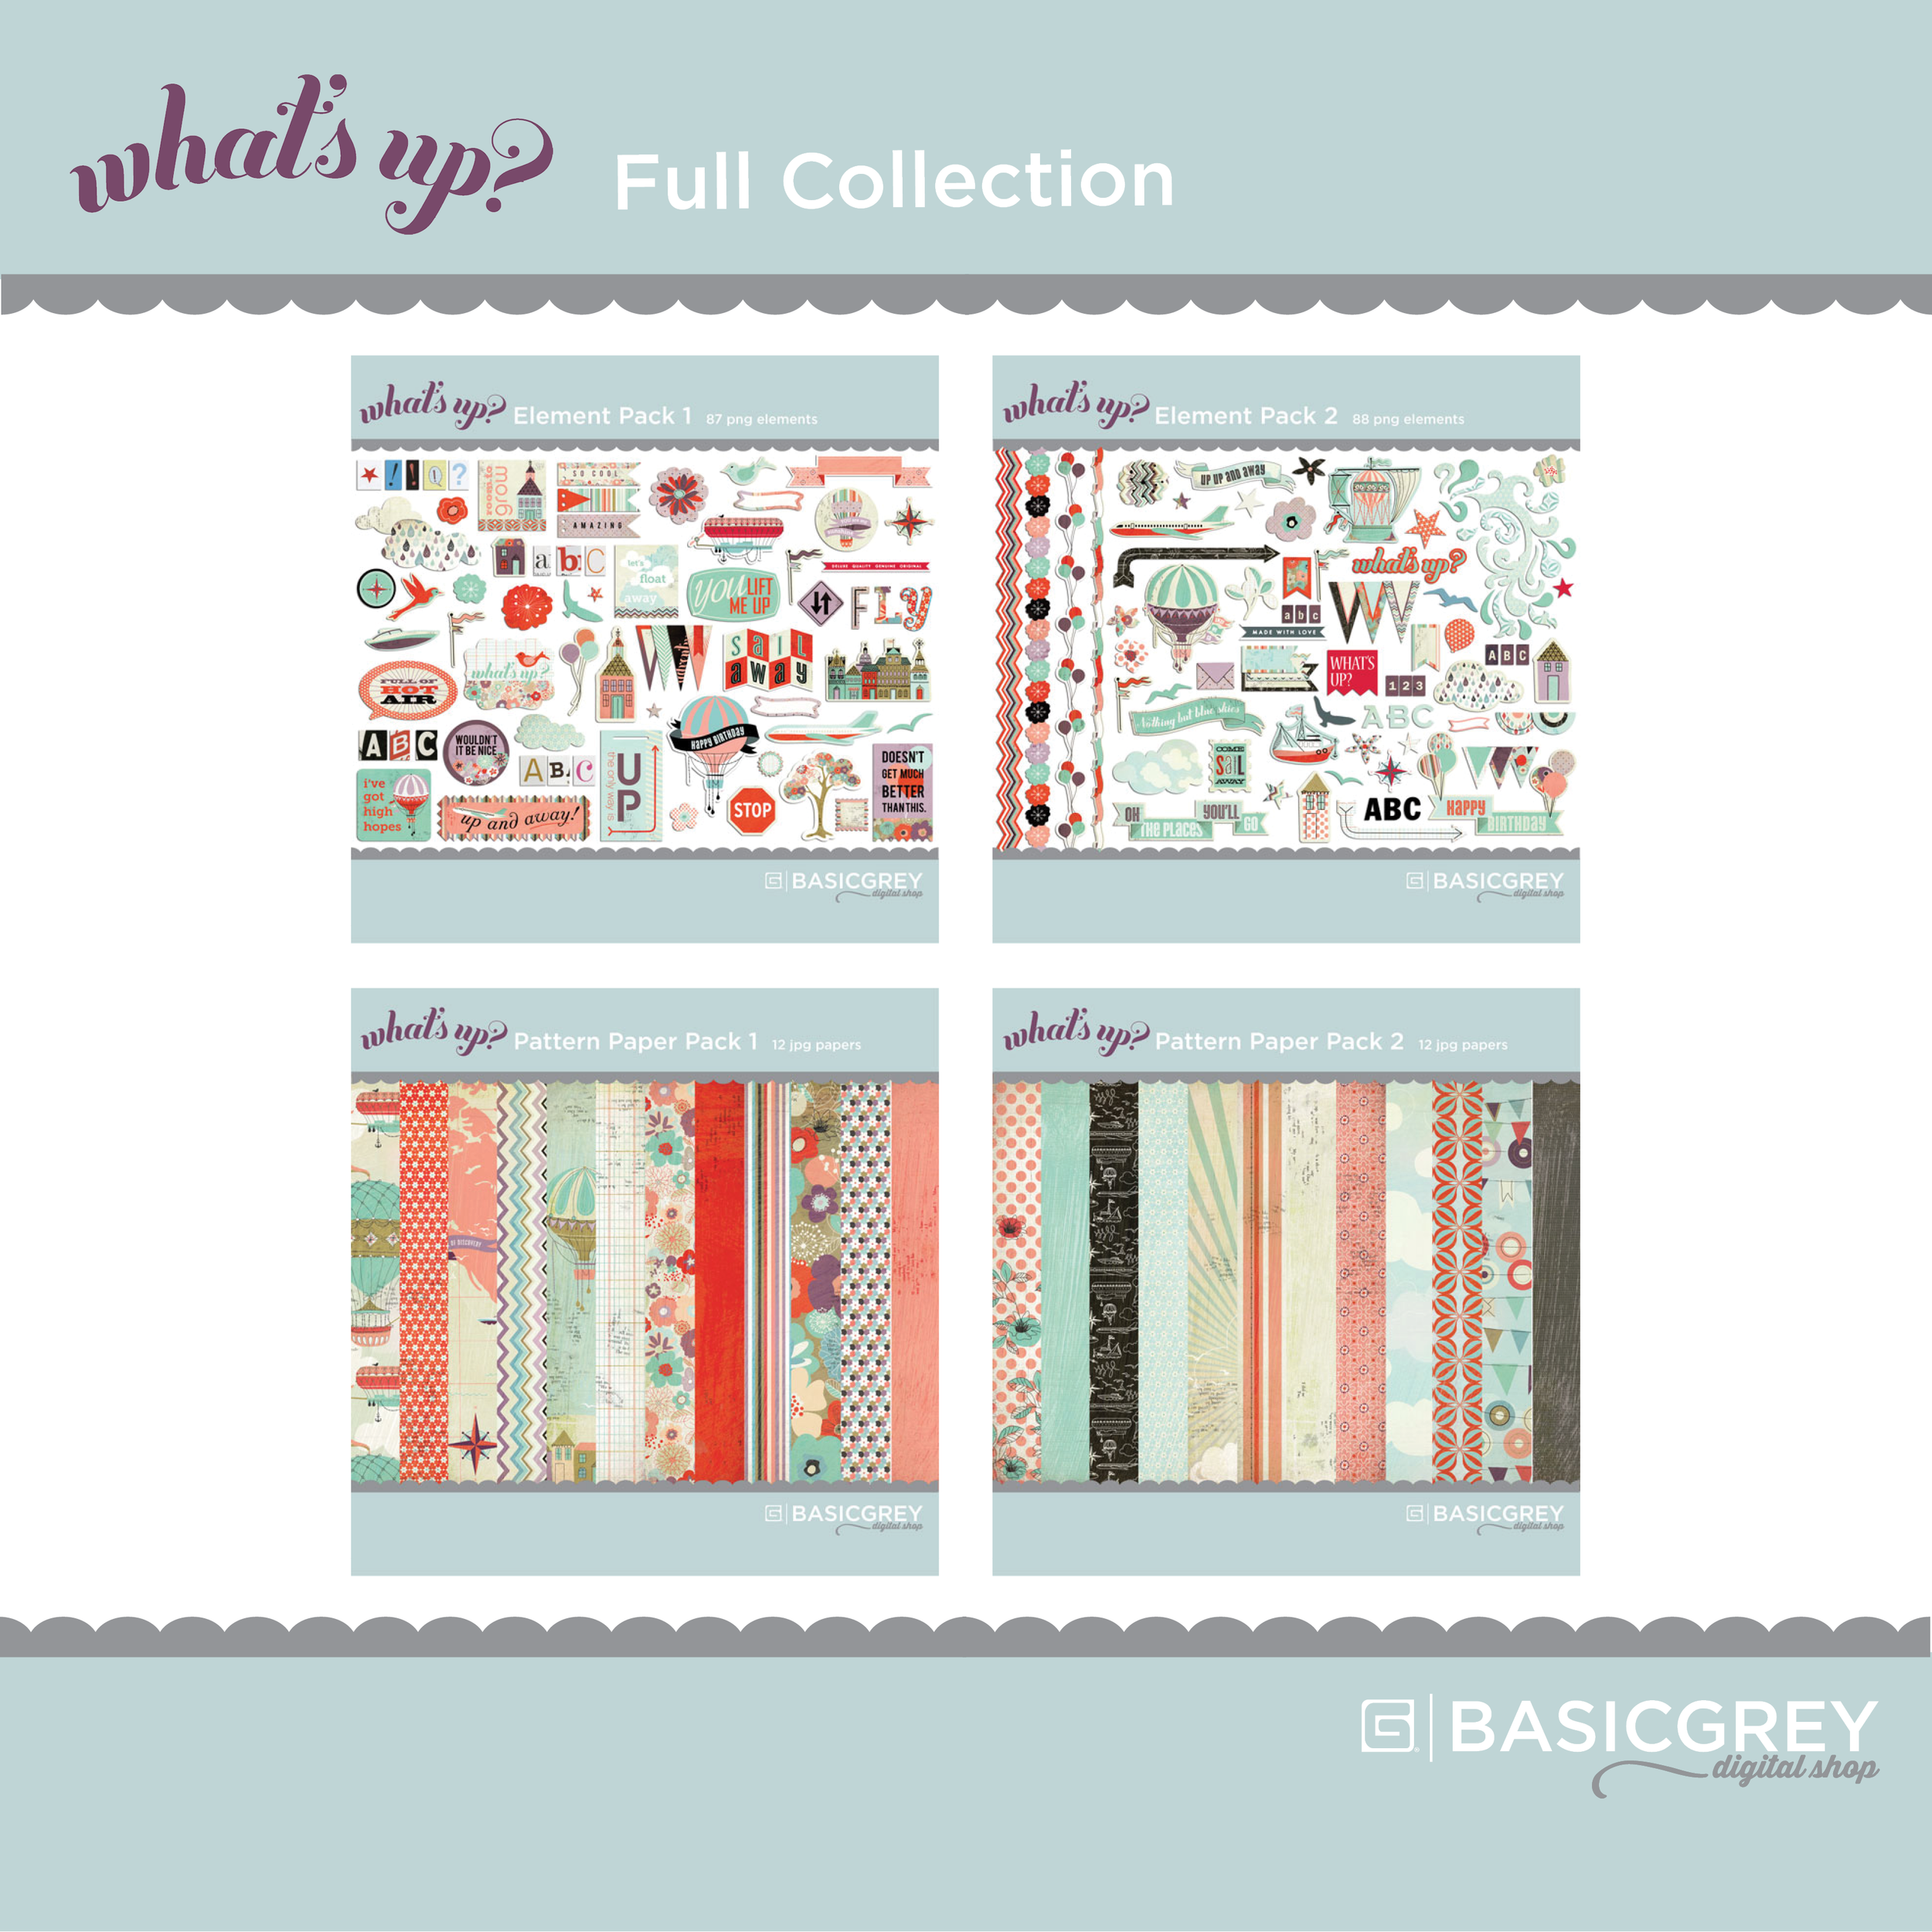 What's Up collection from BasicGrey.